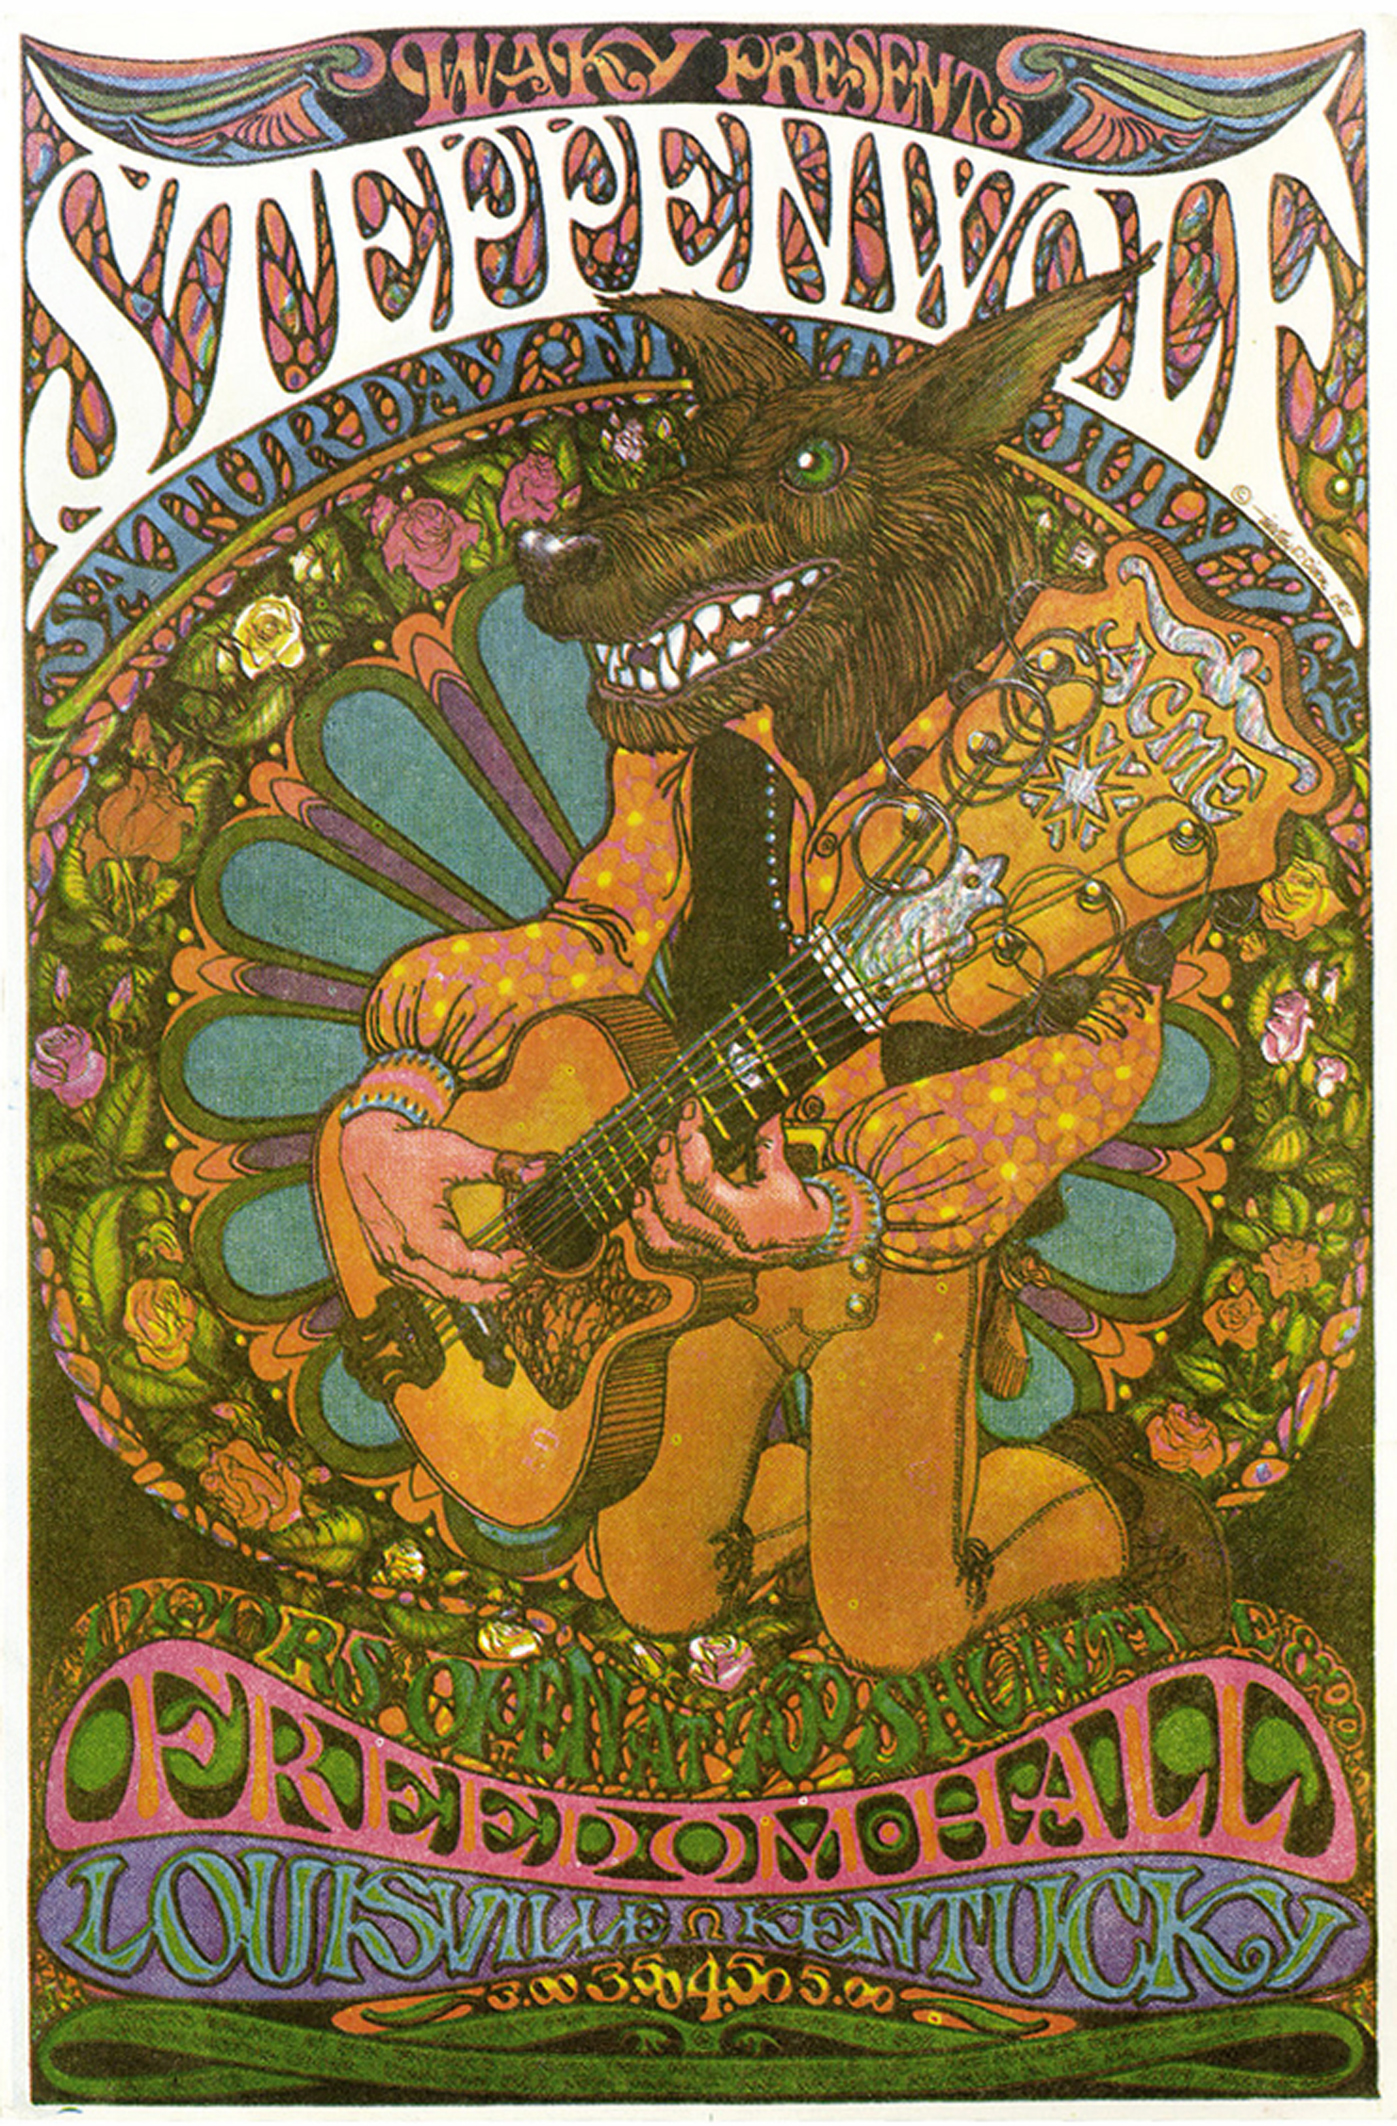 Steppenwolf Freedom Hall Concert 1969